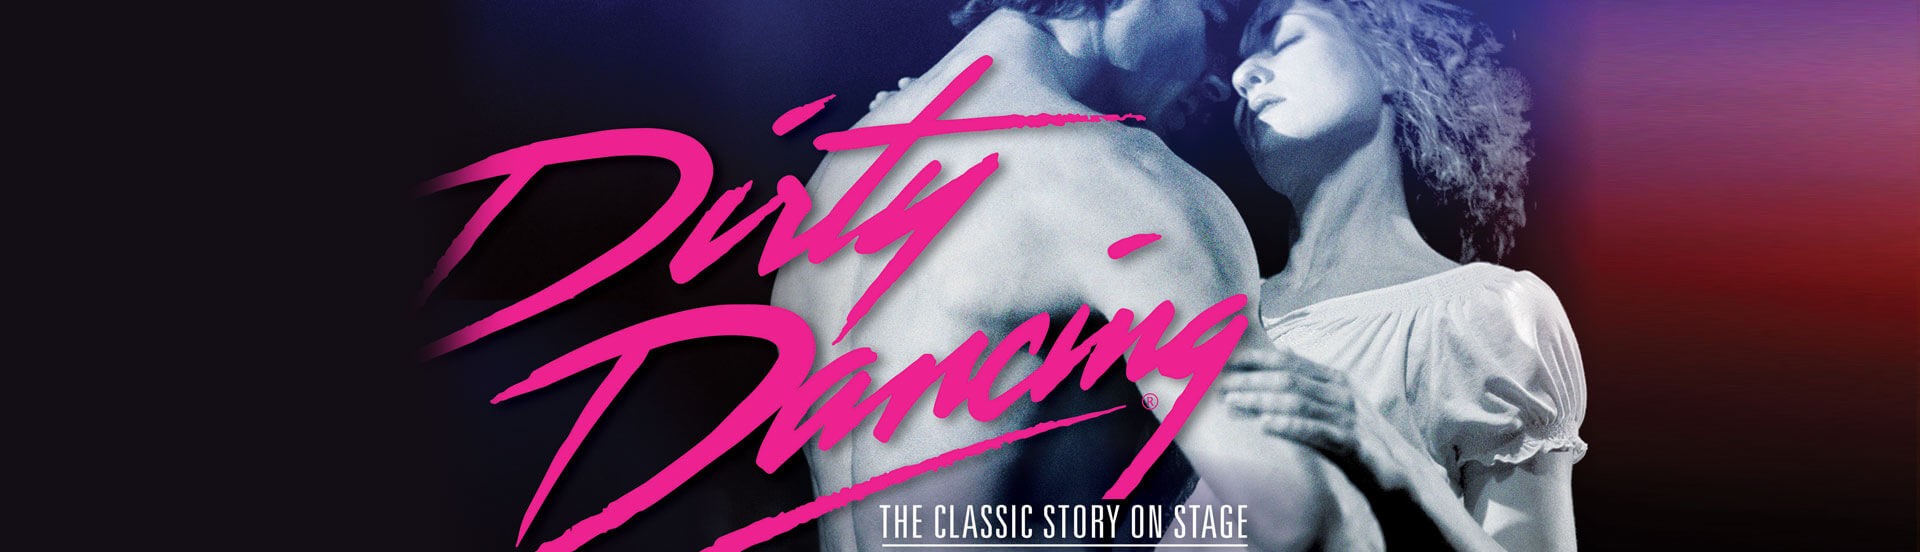 'Dirty Dancing – The Classic Story on Stage' at Purdue Sept. 10